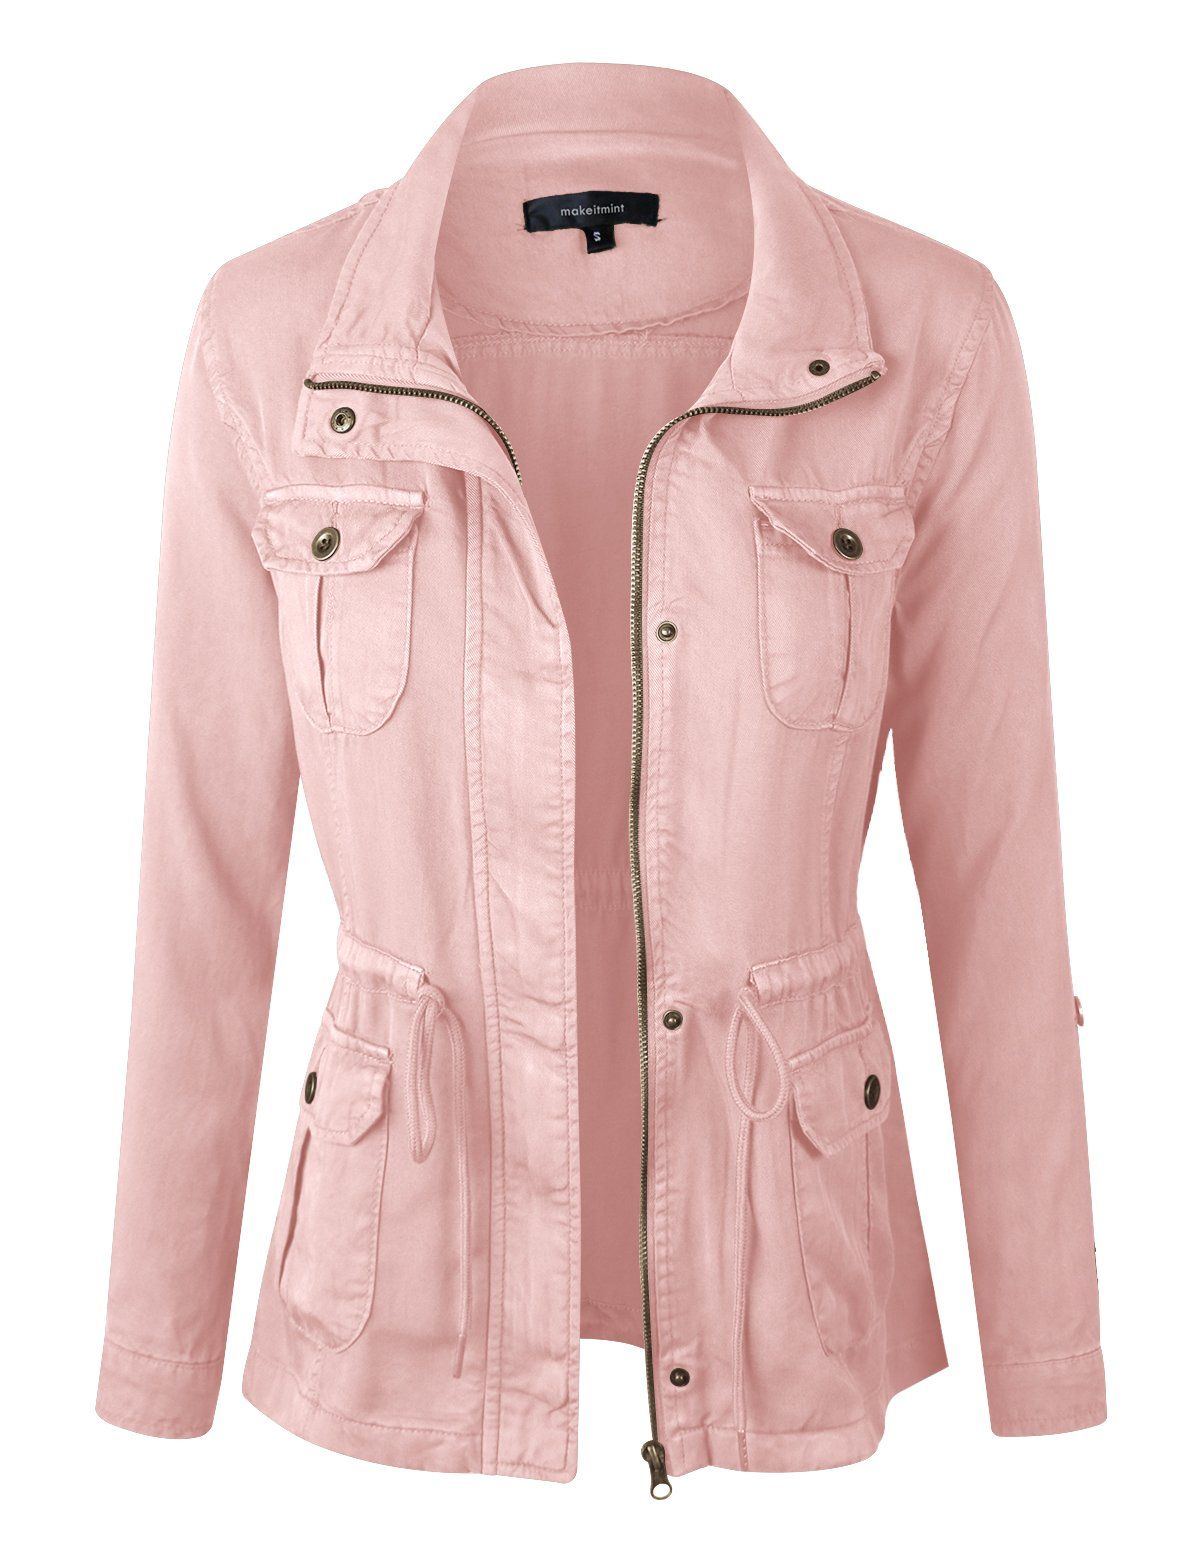 makeitmint Women's Soft Tencel Zip Up Utility Anorak Pocket Light-Weight Jacket YJZ0067-BLUSH-MED by makeitmint